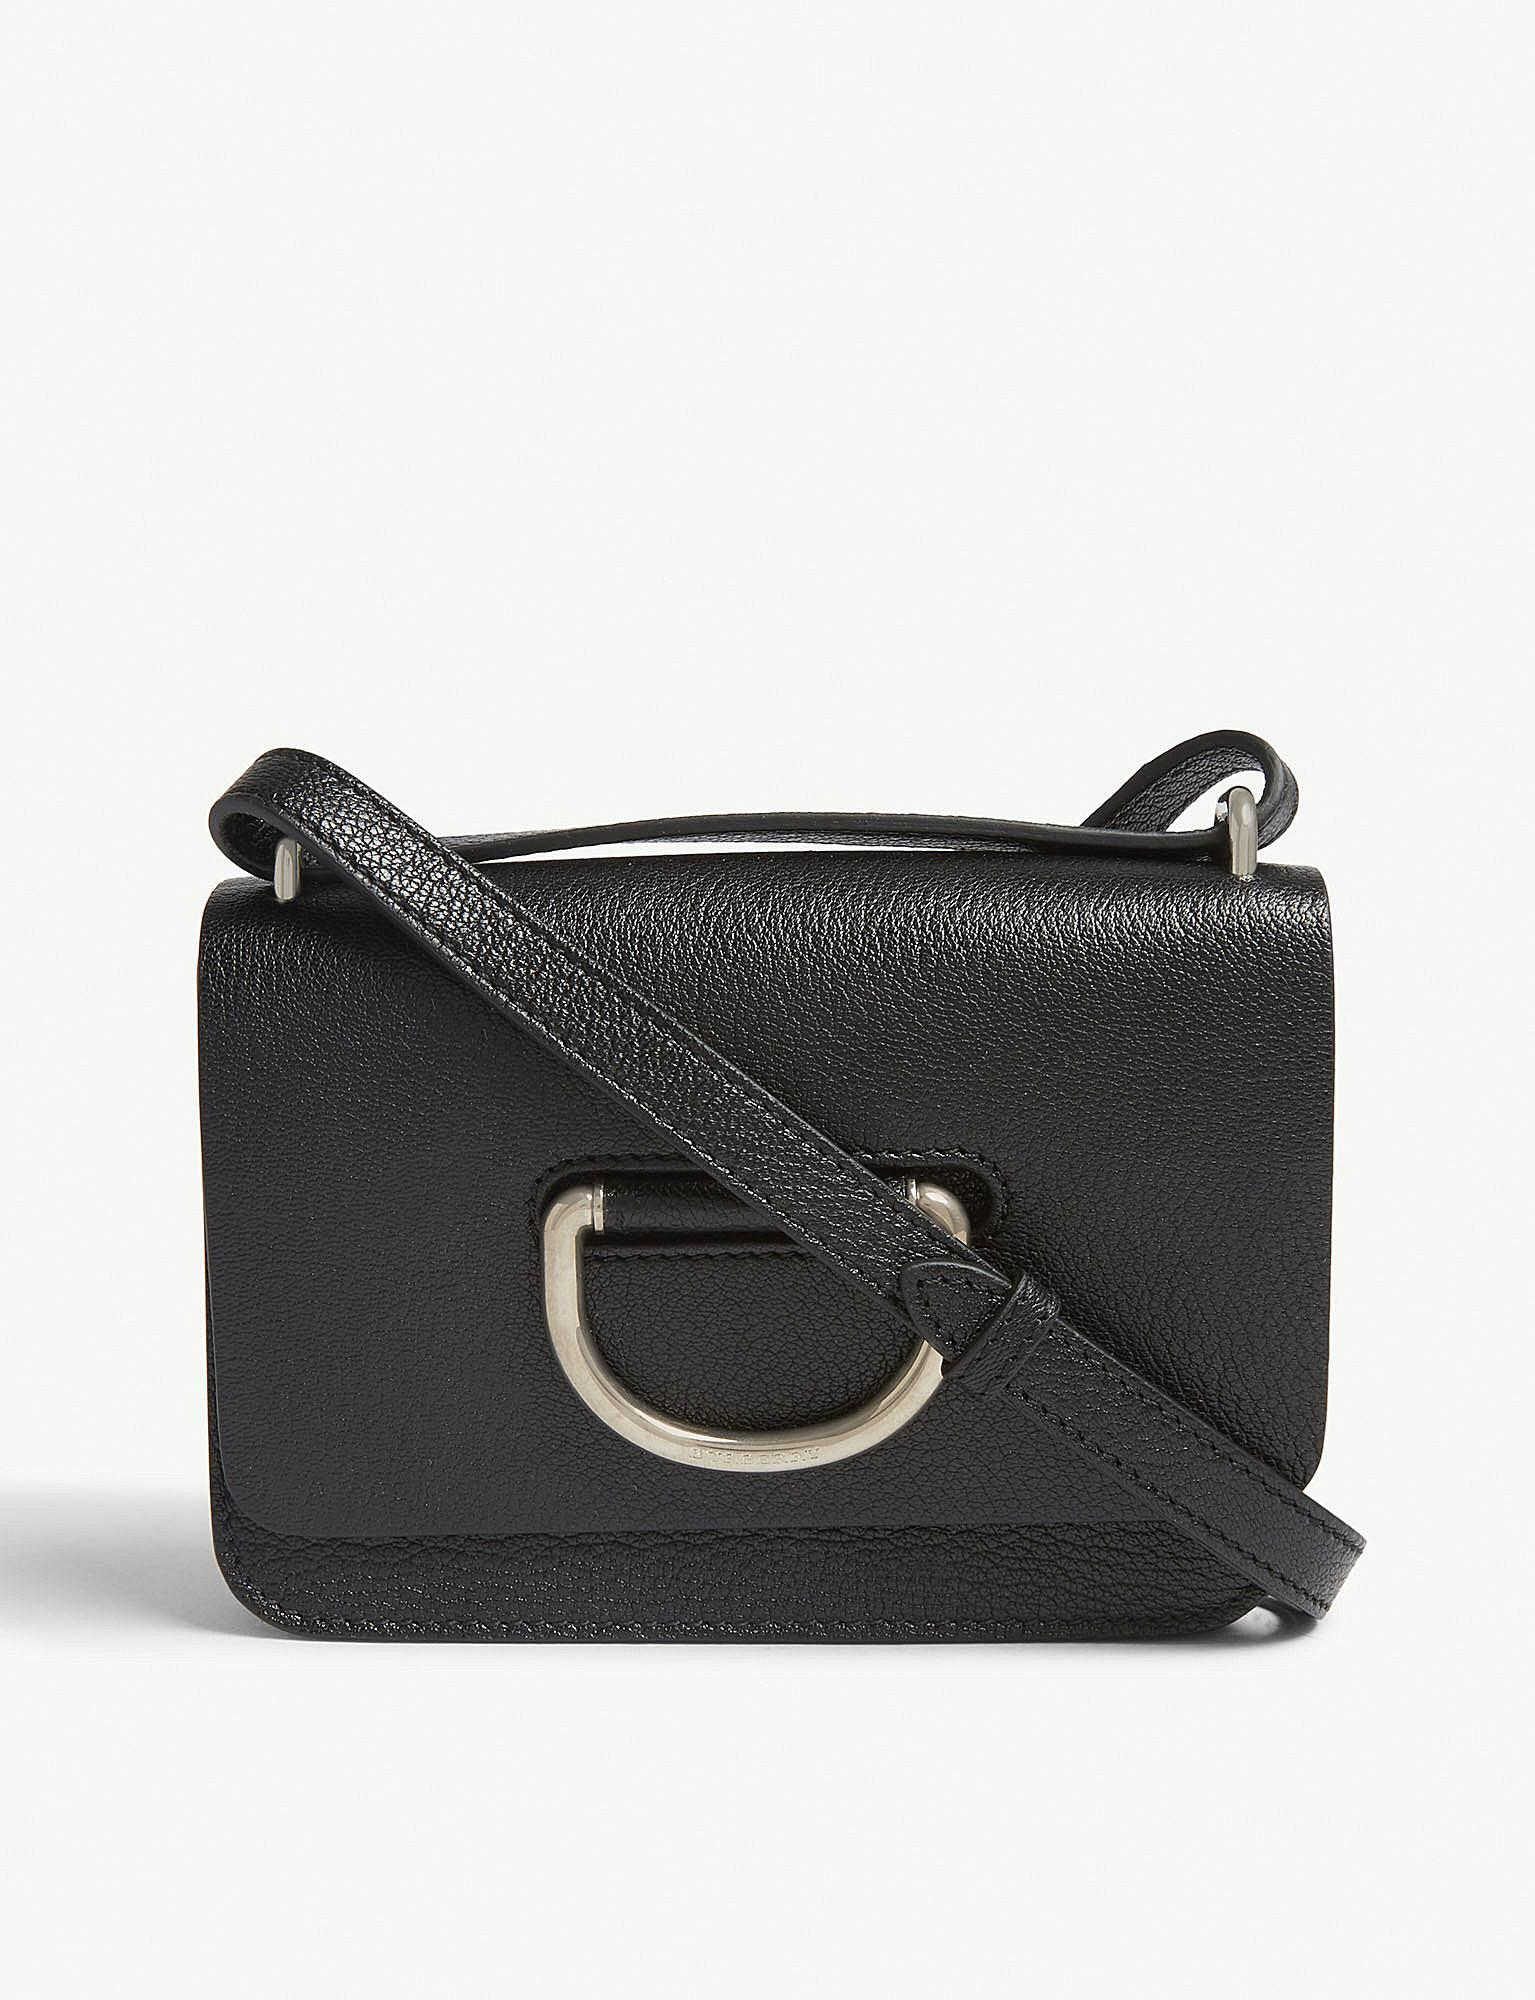 Lyst - Burberry The Mini Leather D-ring Bag in Black - Save 23% dfe9632eb814d